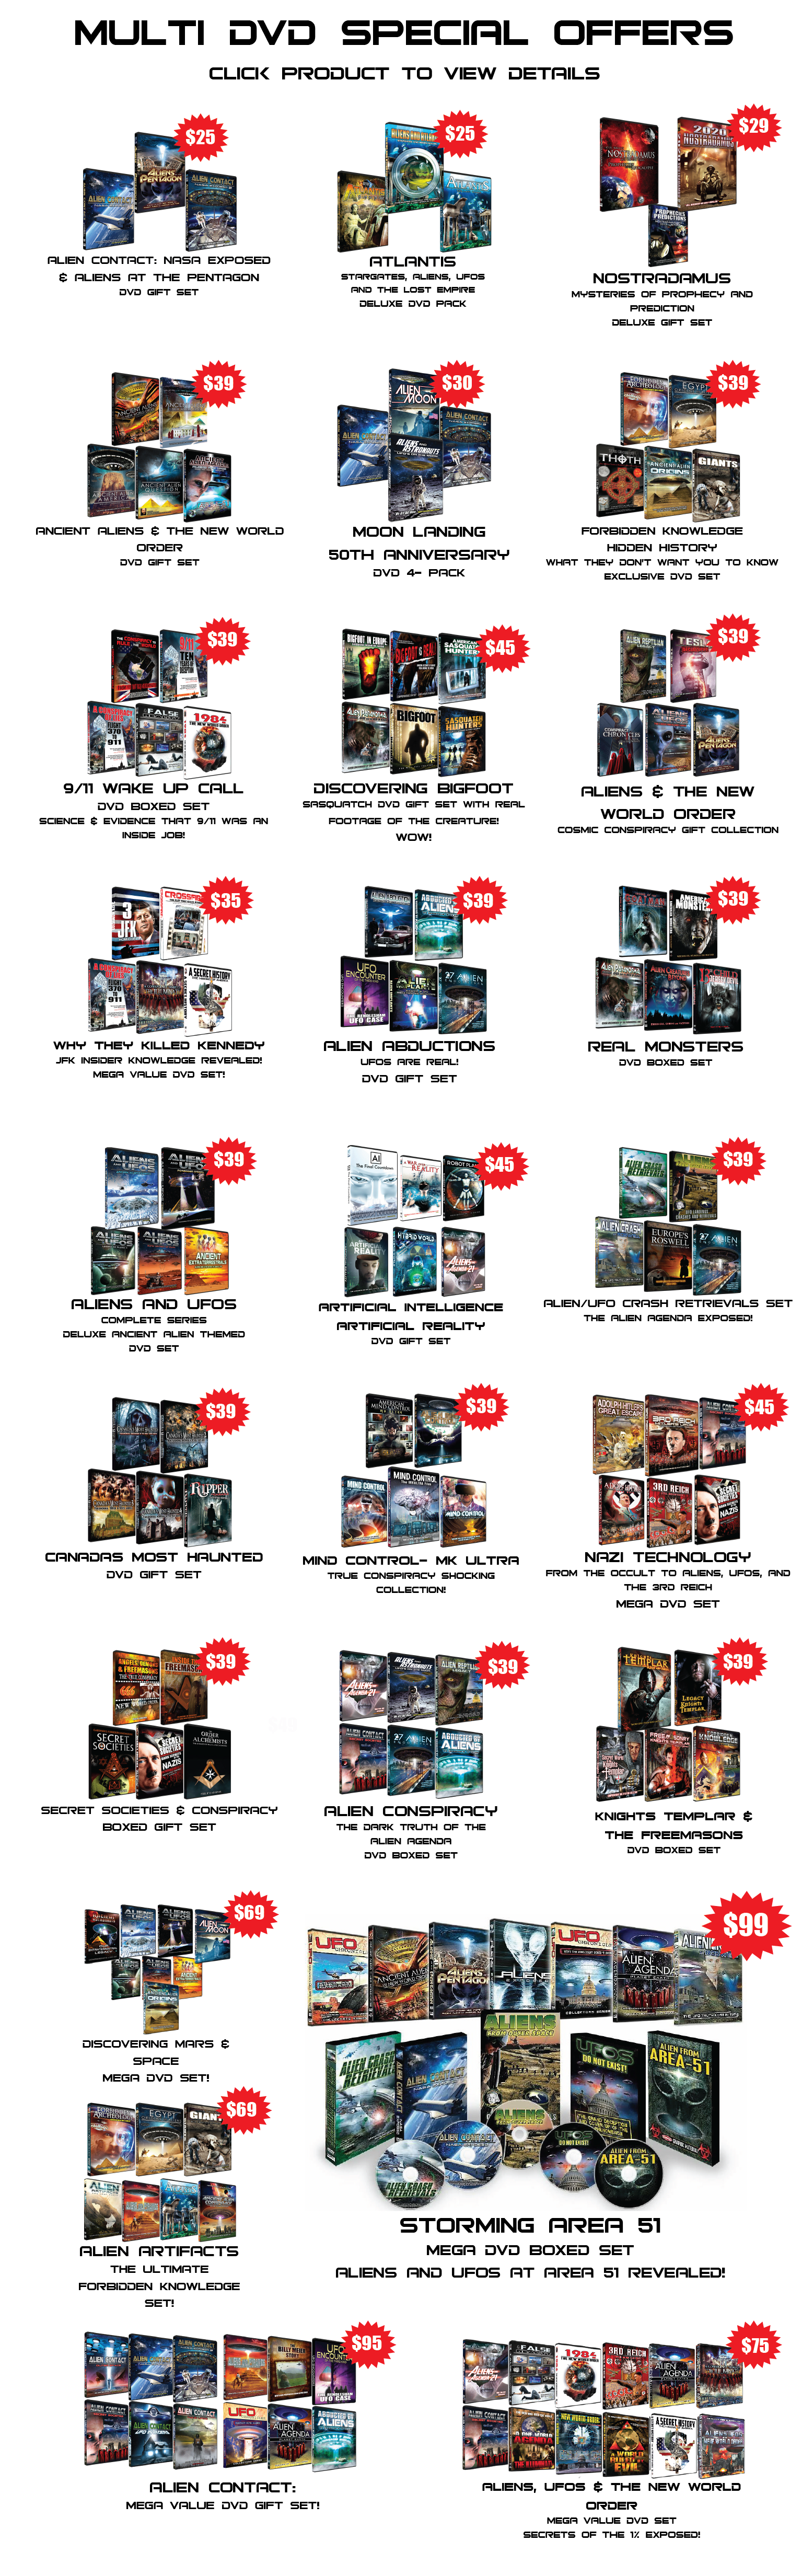 MULTI DVD SPECIAL OFFERS!